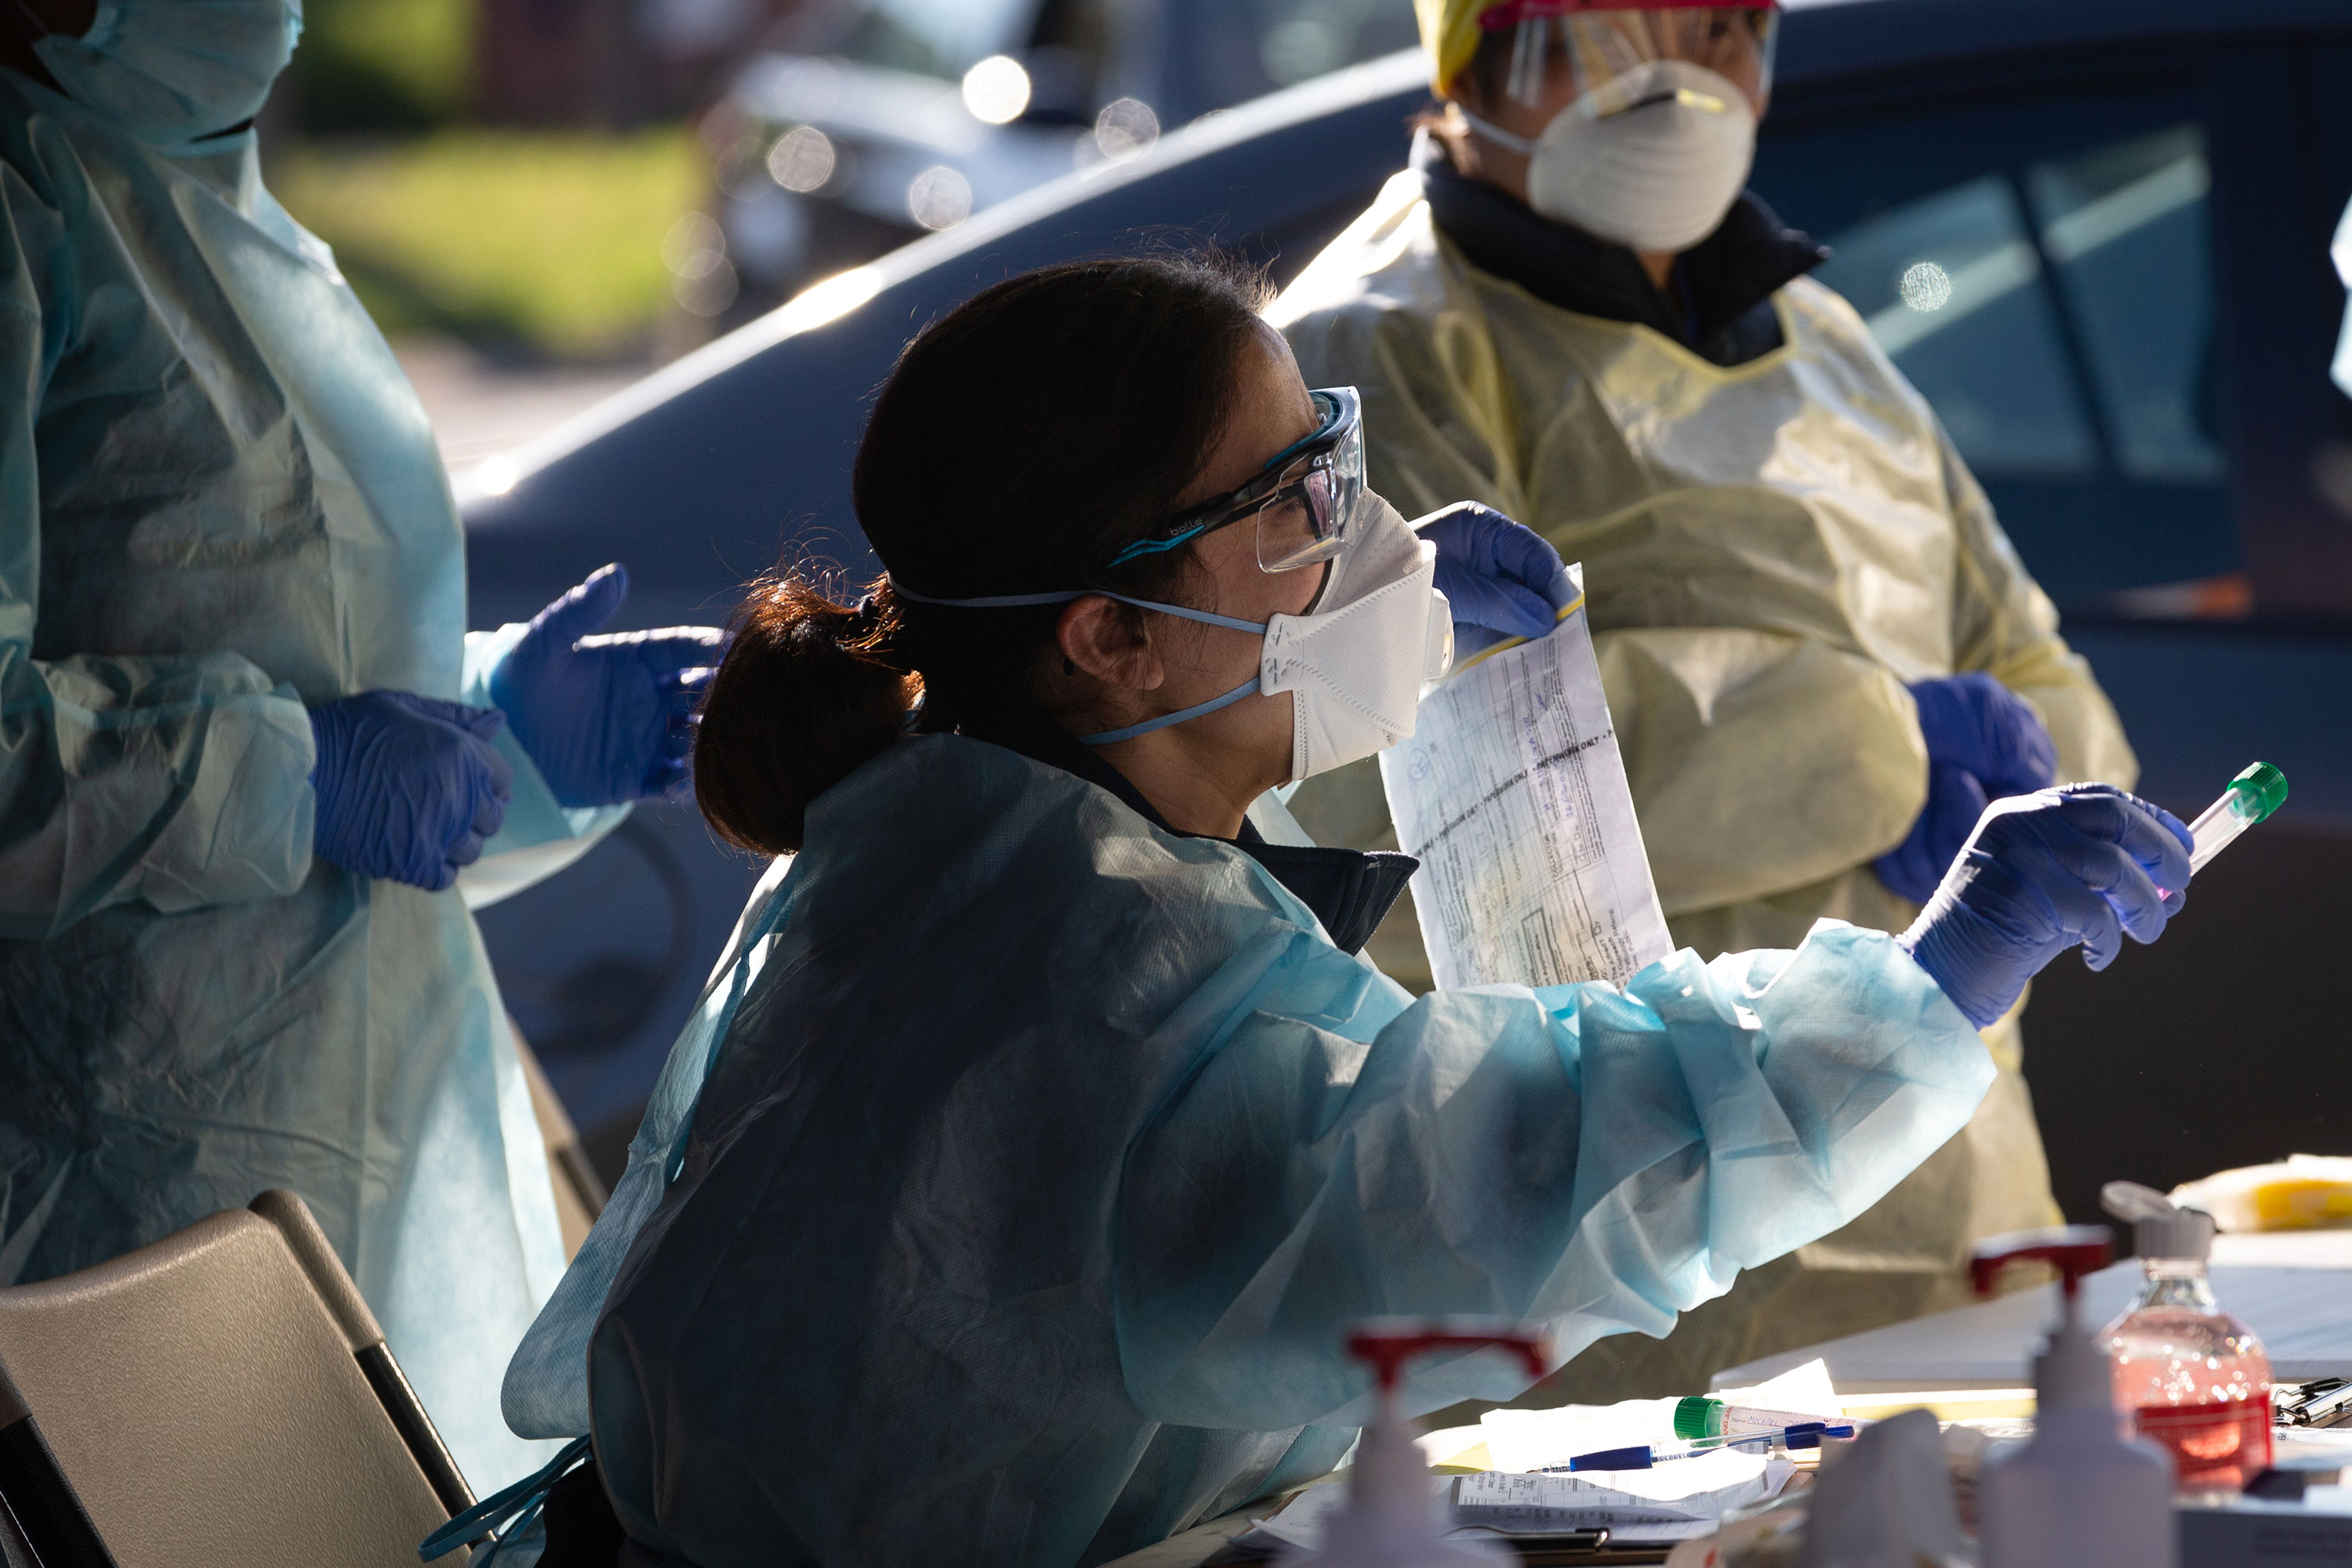 A member of the Covid-19 testing team holds a vile with a swab from a test conducted at a pop-up testing facility on June 28 in Melbourne, Australia.